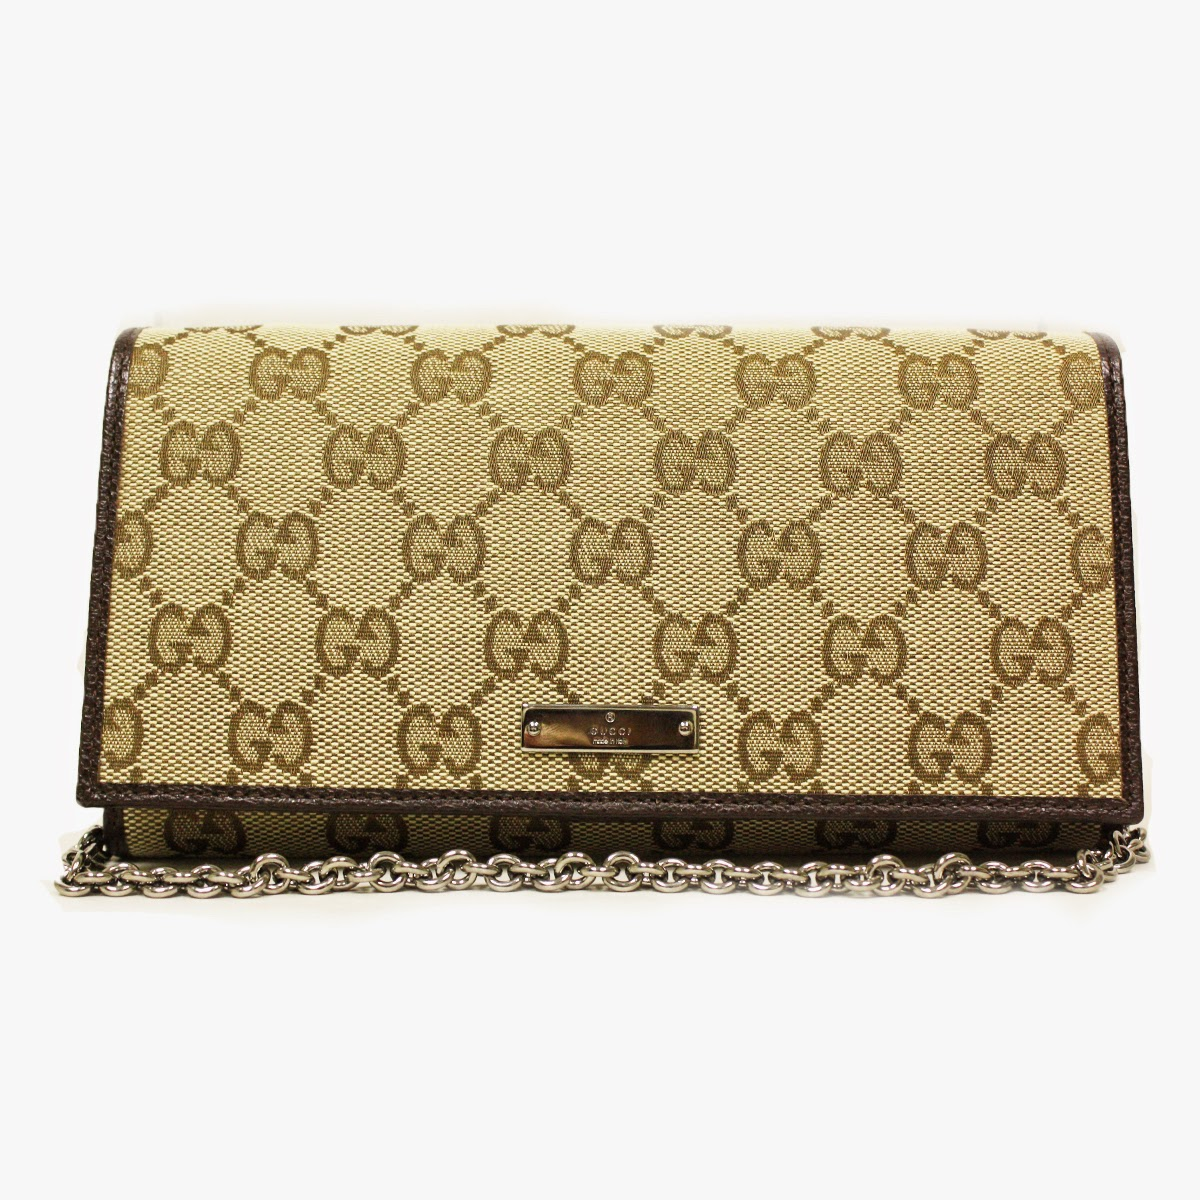 Gucci 170426 Gucci GG Logo Brown Leather and Canvas Chain Wallet